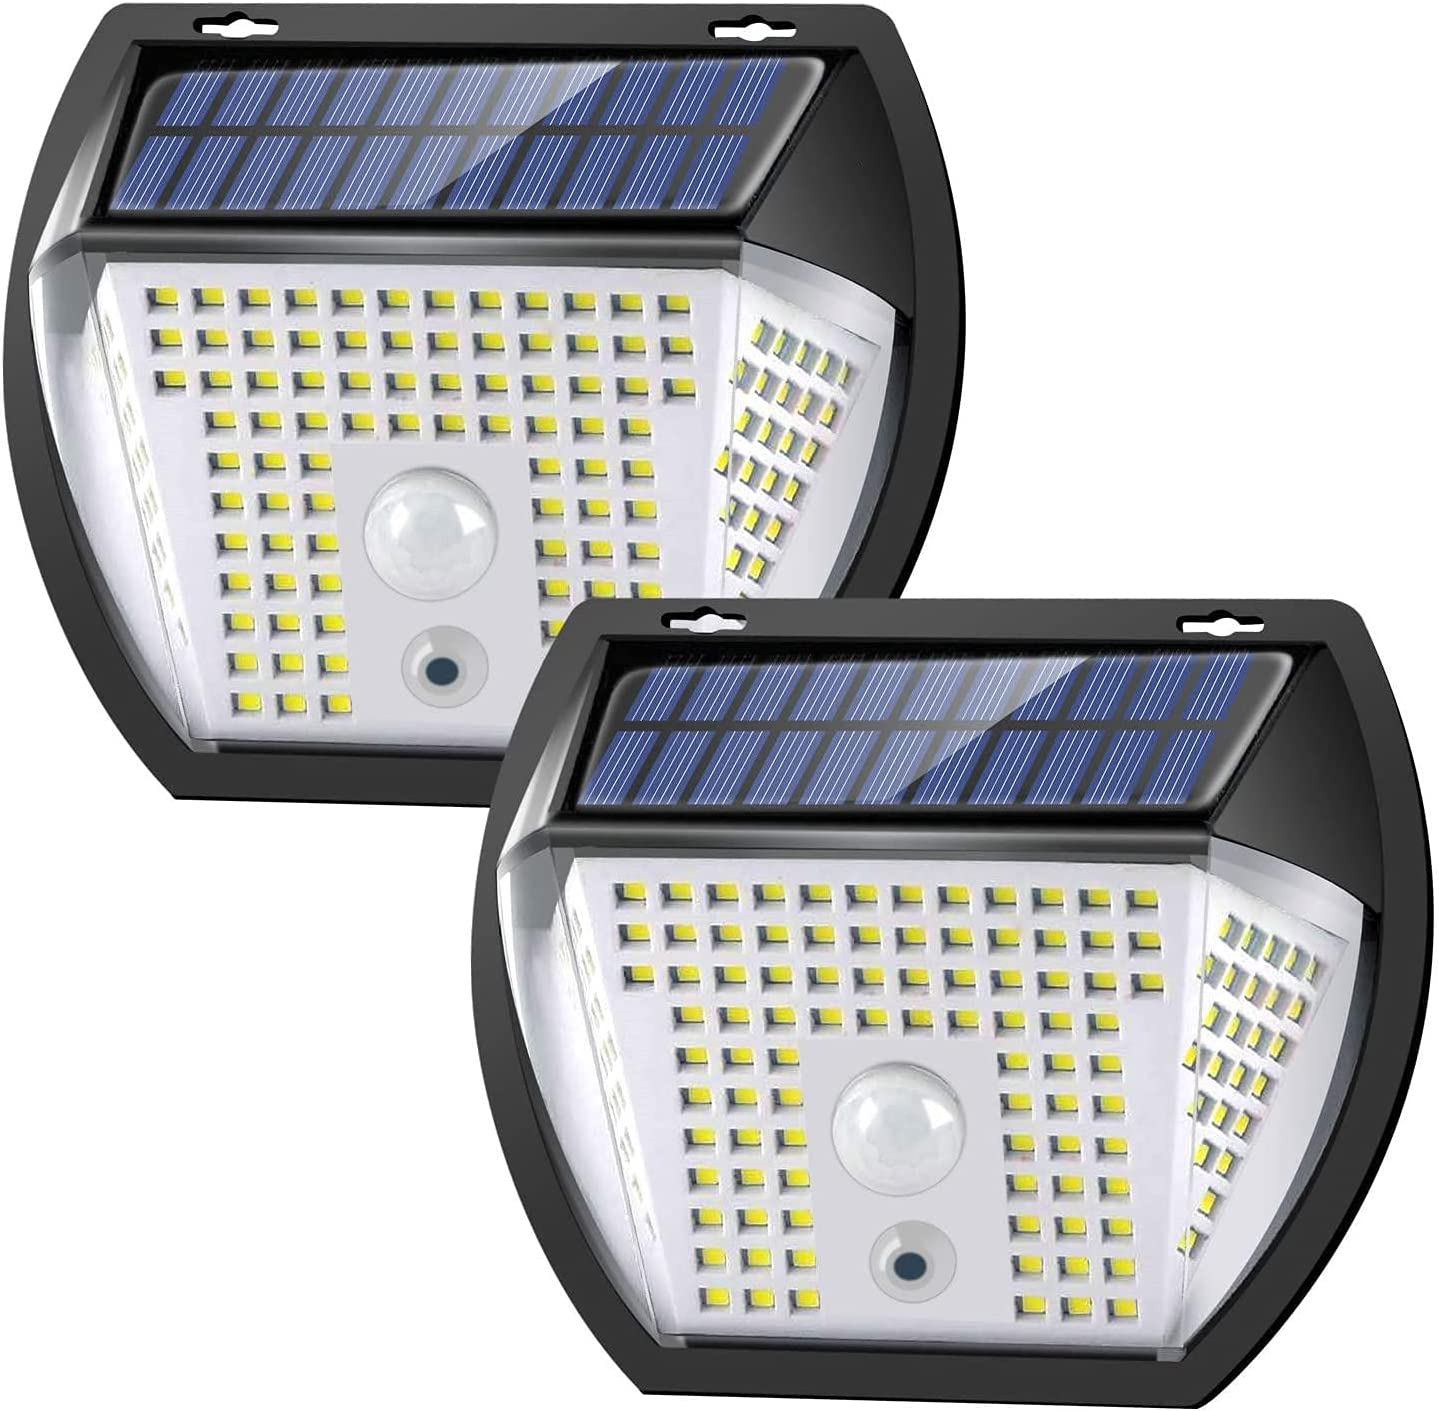 Magnetic Solar Motion Sensor LED Wall Light,IP65 Waterproof 3 Lighting Modes,Damage-Free Installation and Portable,Flexible RV Safety Lighting for Entry Steps,Deck and Porch,2 Packs